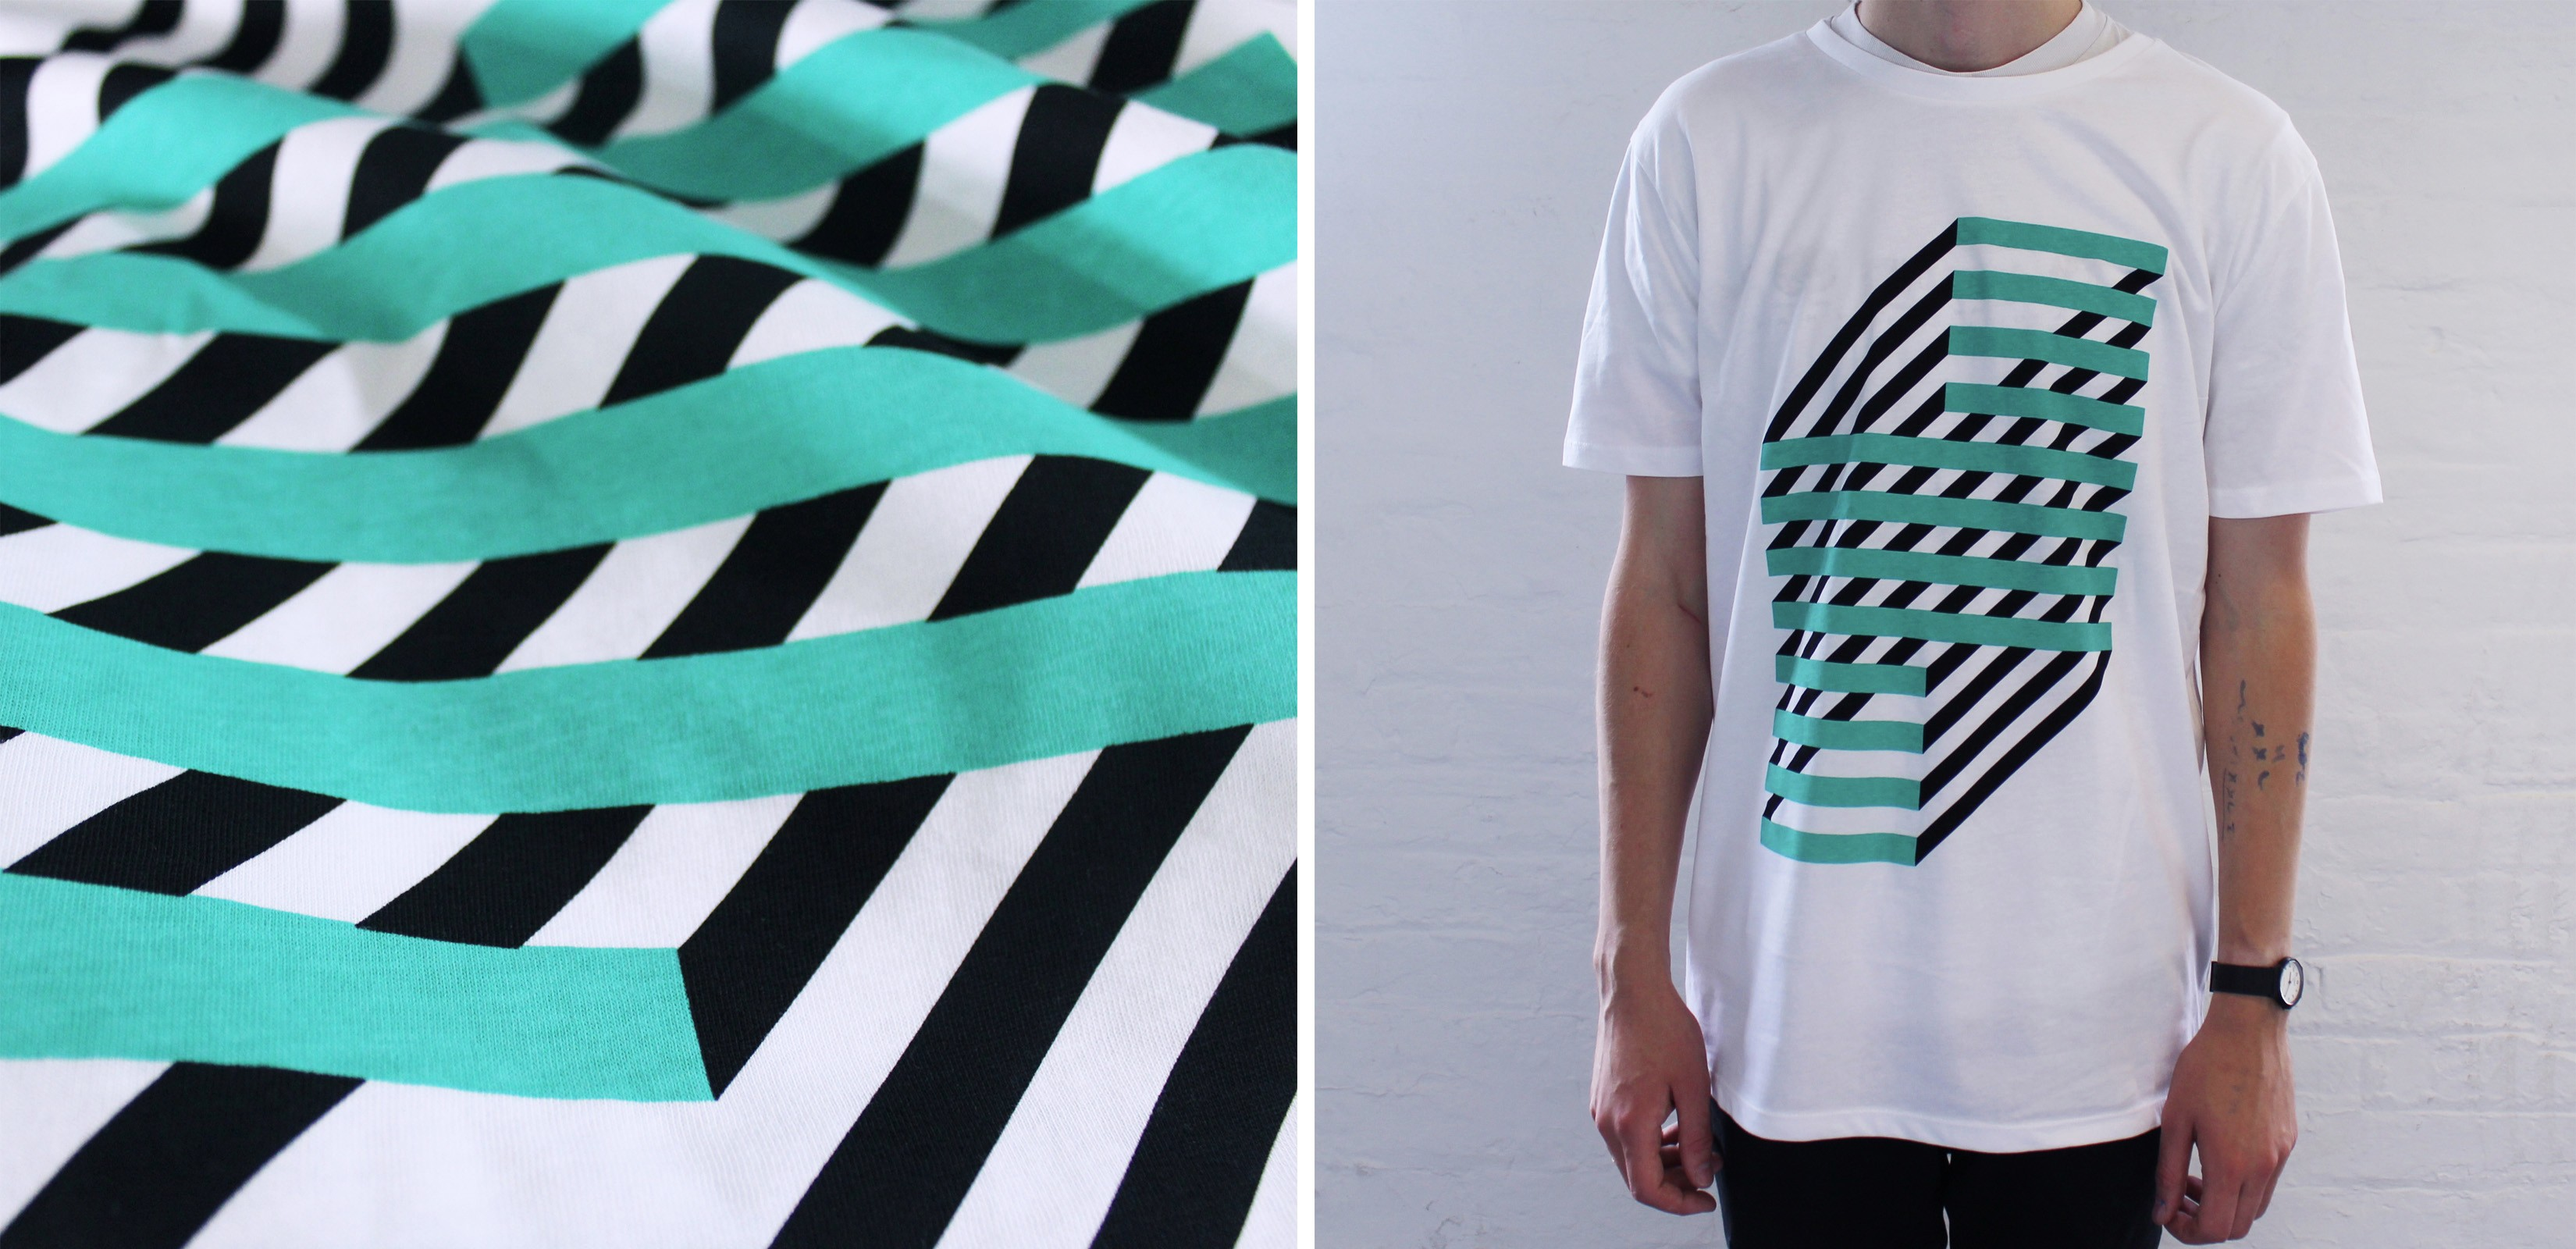 Screen printed t-shirt with graphic pattern